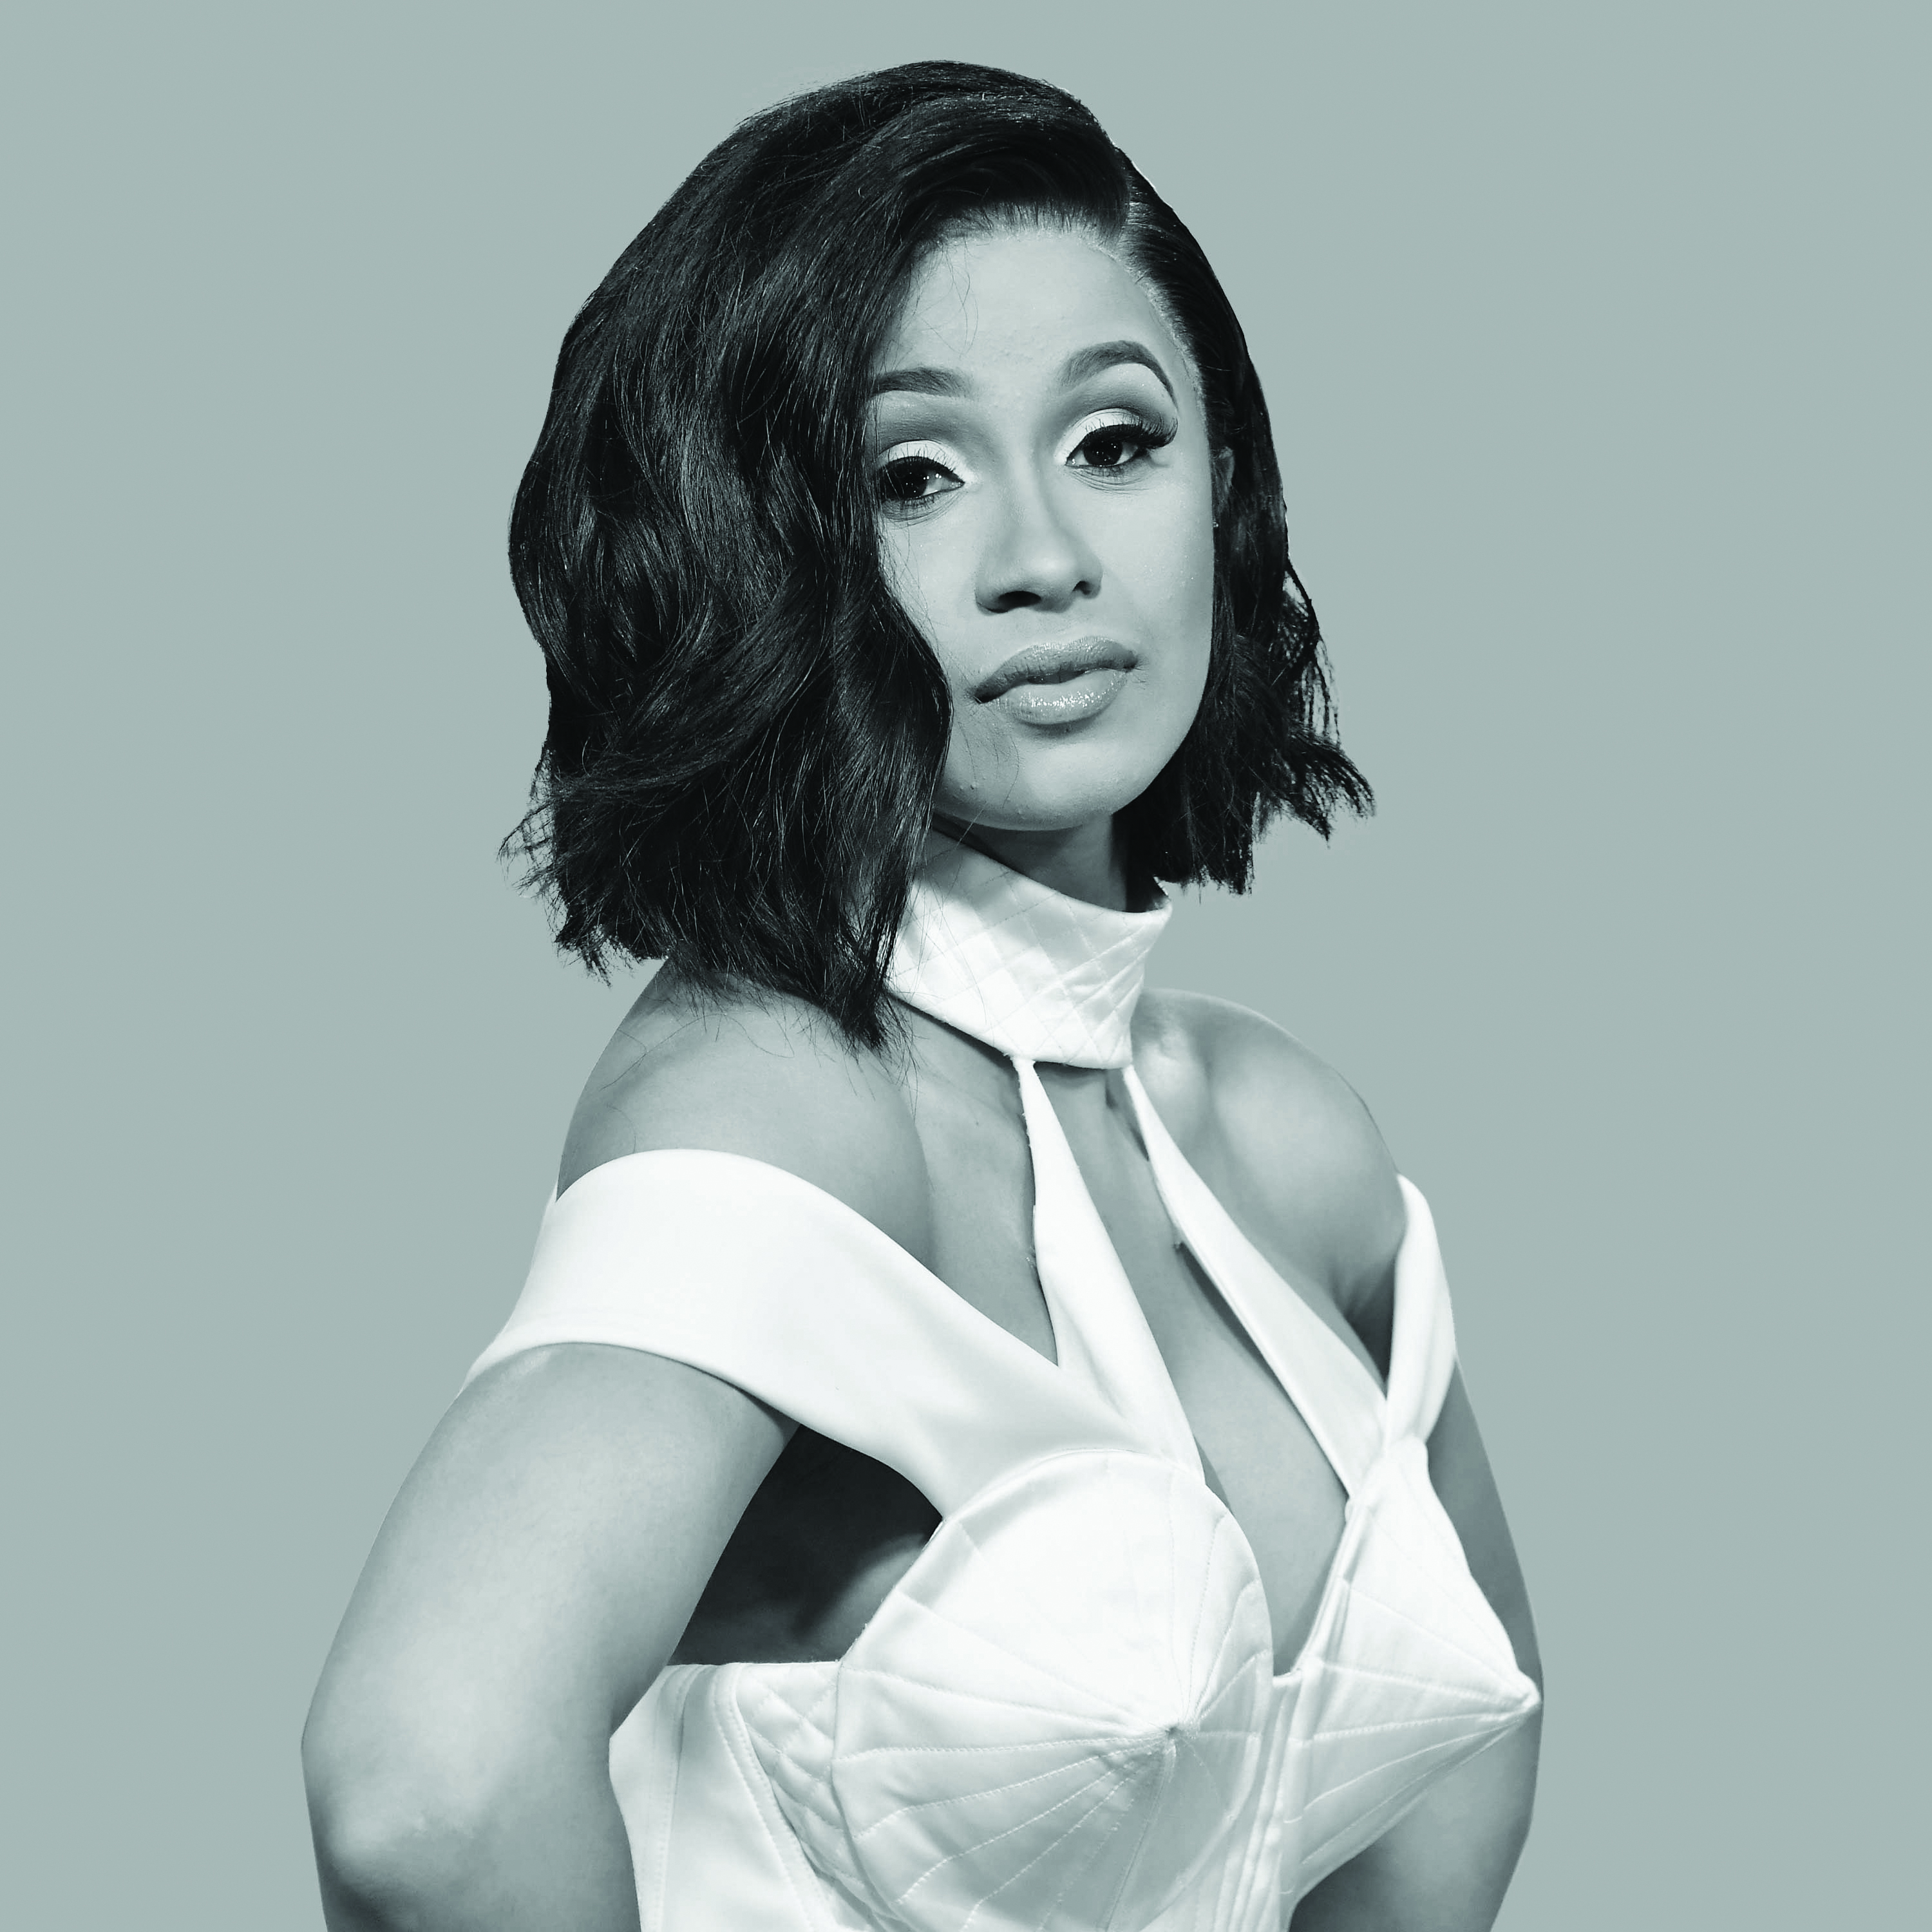 Cardi B Rapping: Cardi B Crowned As New Queen Of Rap